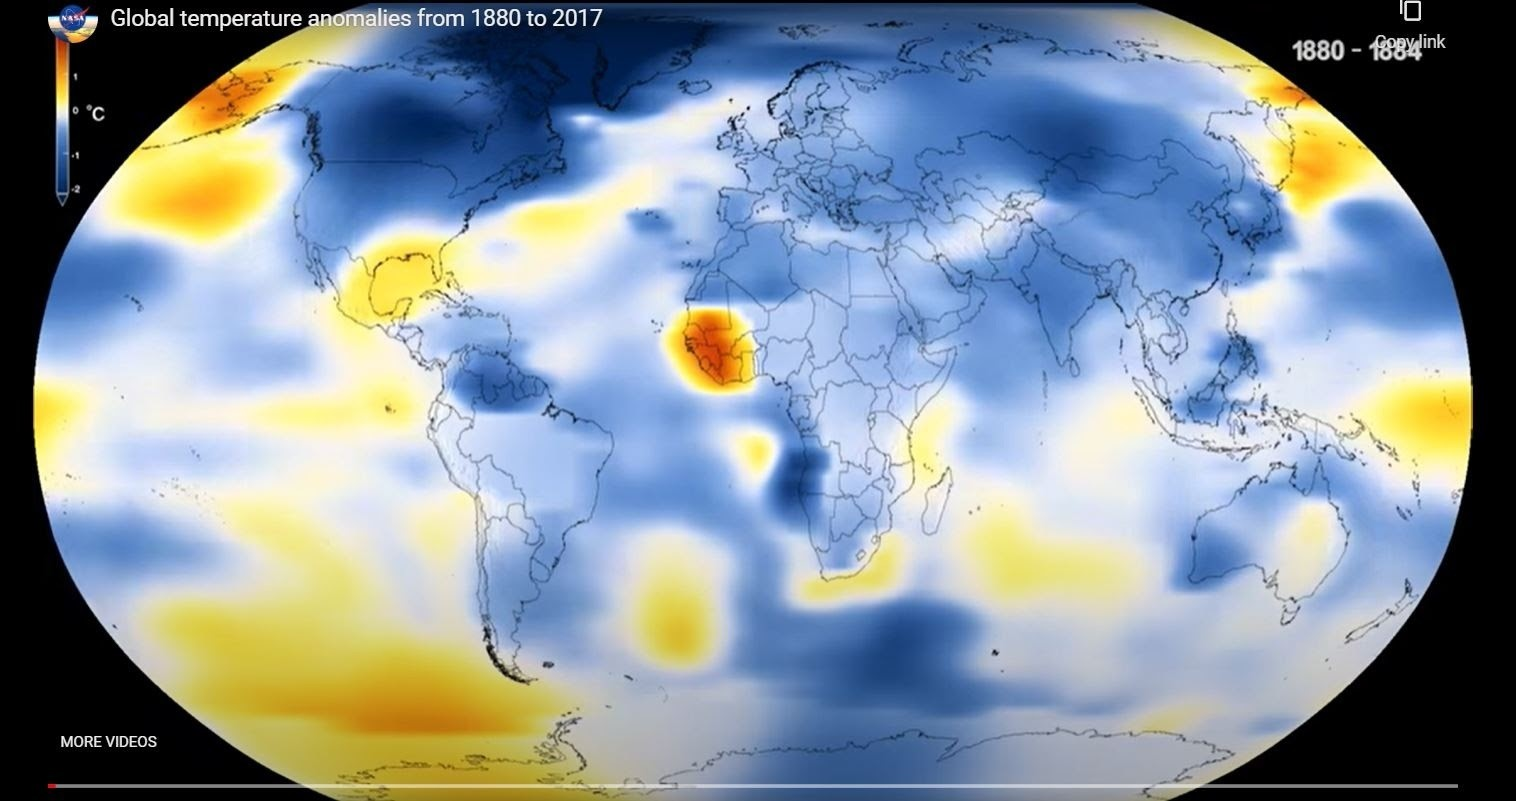 a map of the world showing Global temperature anomalies in 1880-1884